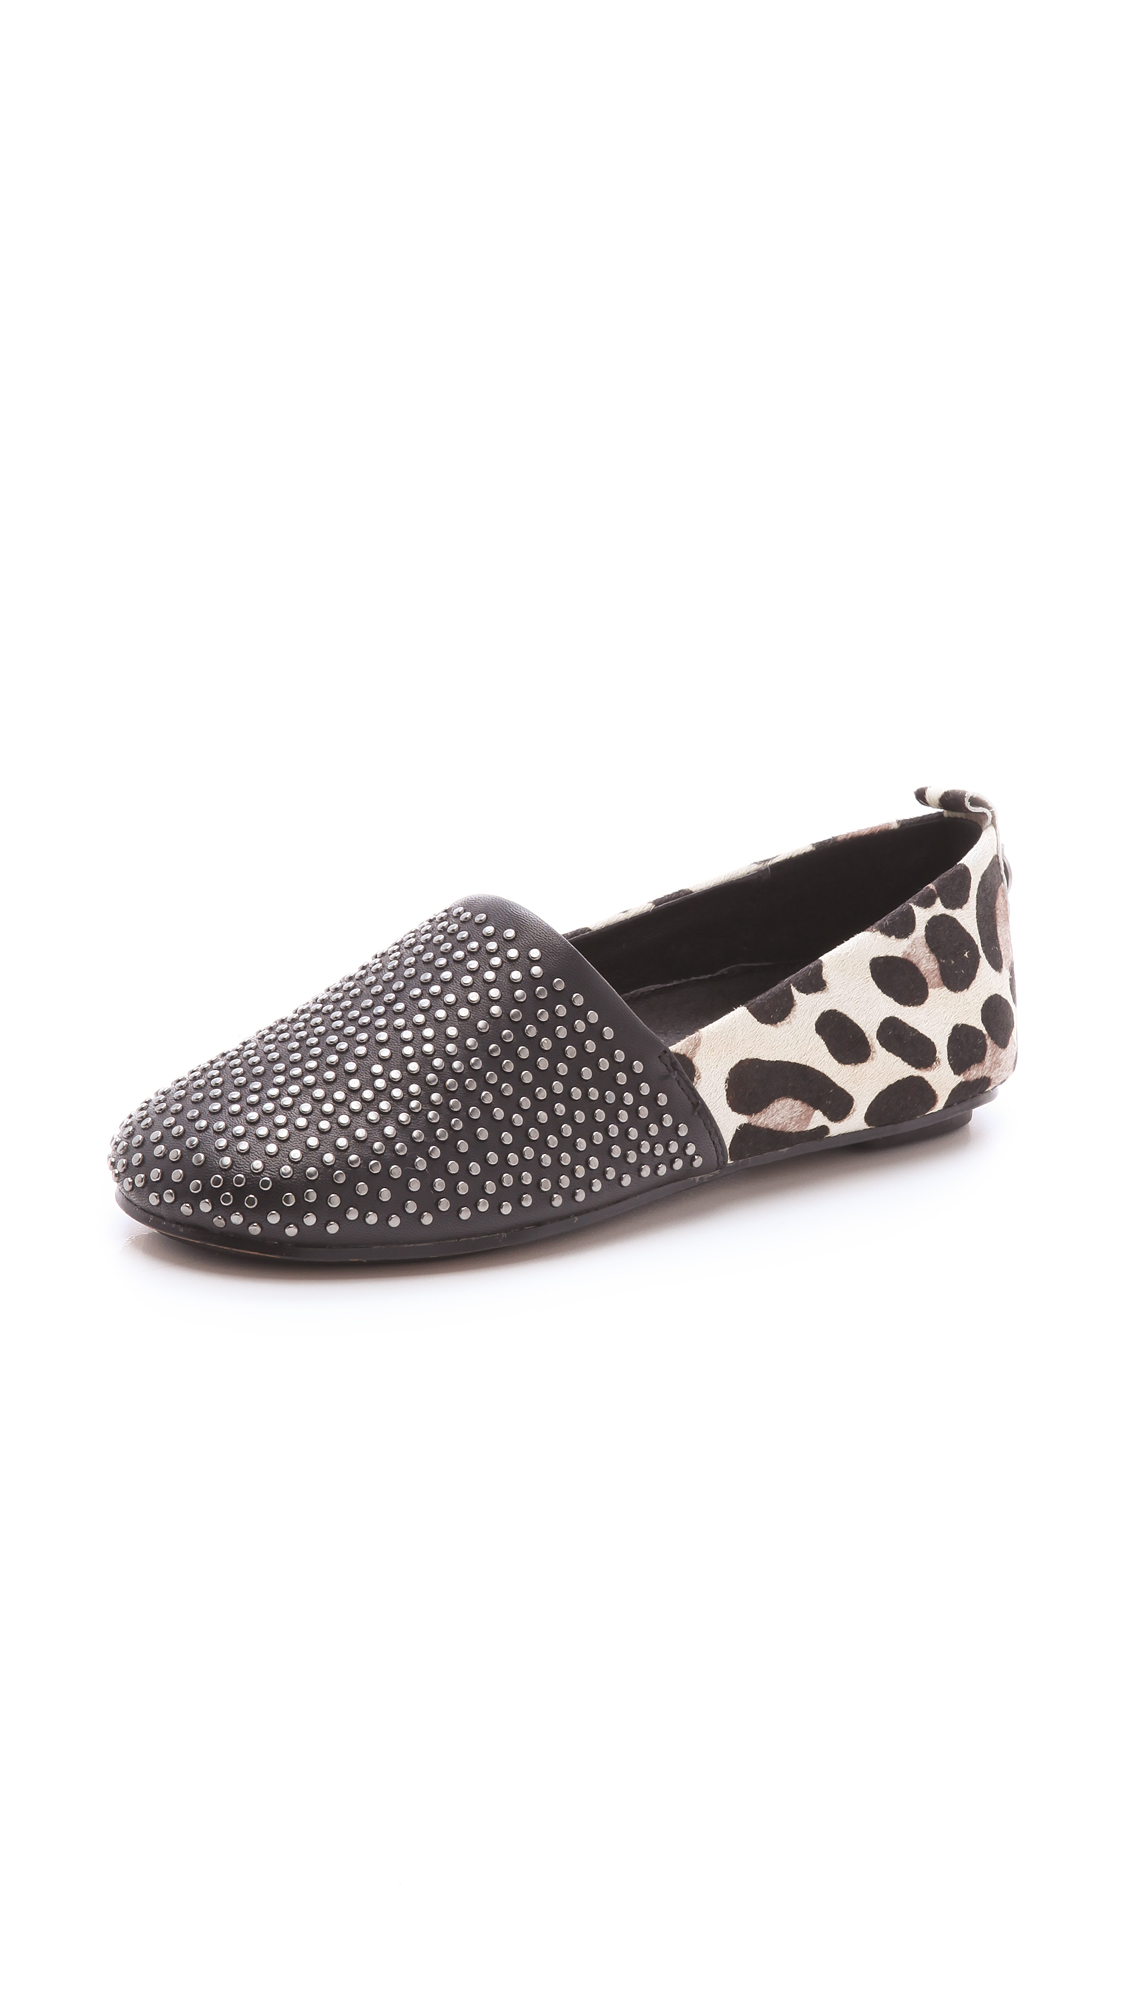 67f44aed5add House of Harlow 1960 Haircalf Stud Kye Flats in Black - Lyst